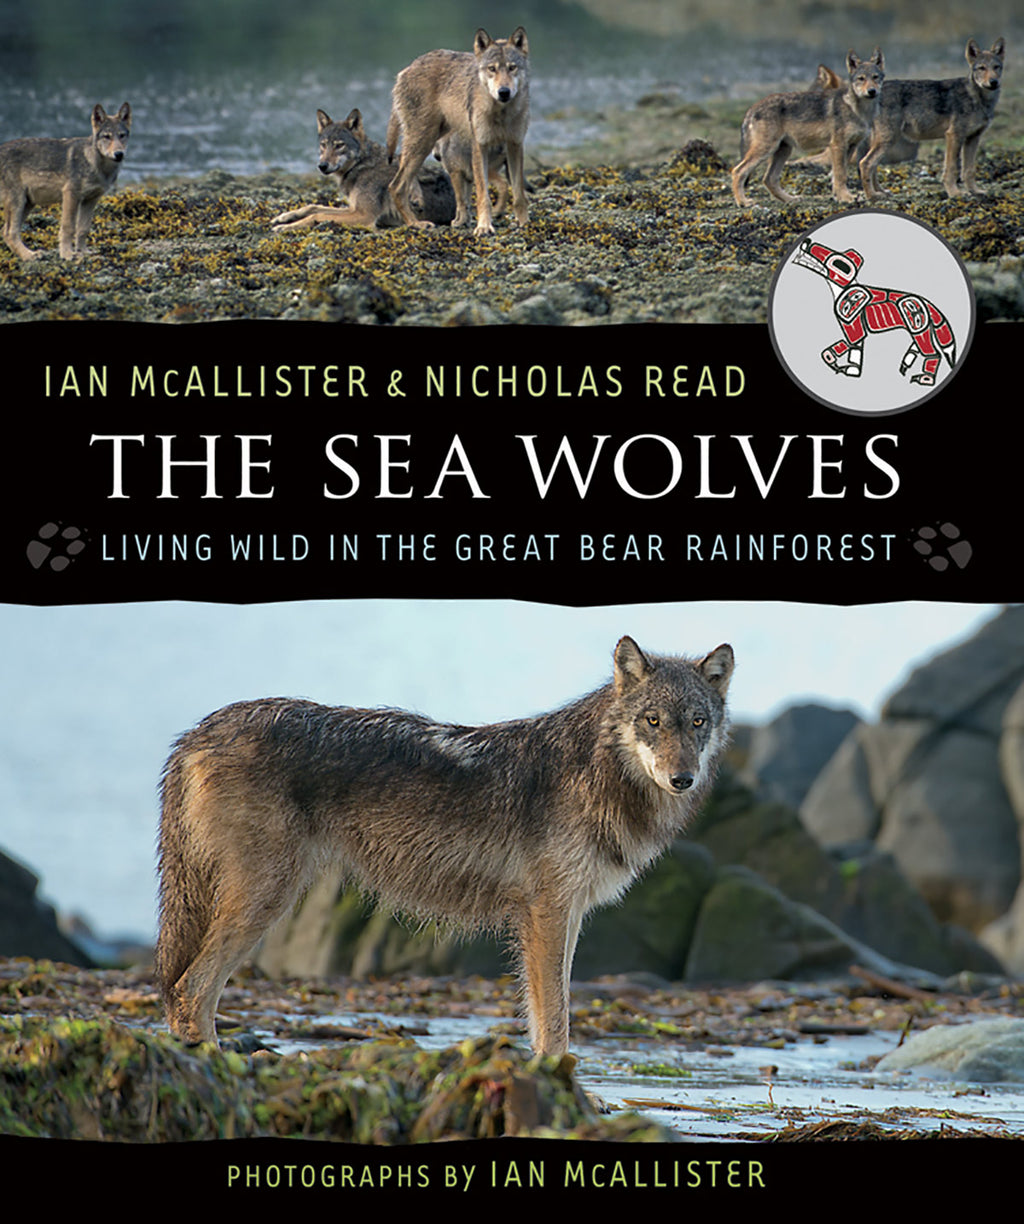 The Sea Wolves by Ian McAllister and Nicholas Read